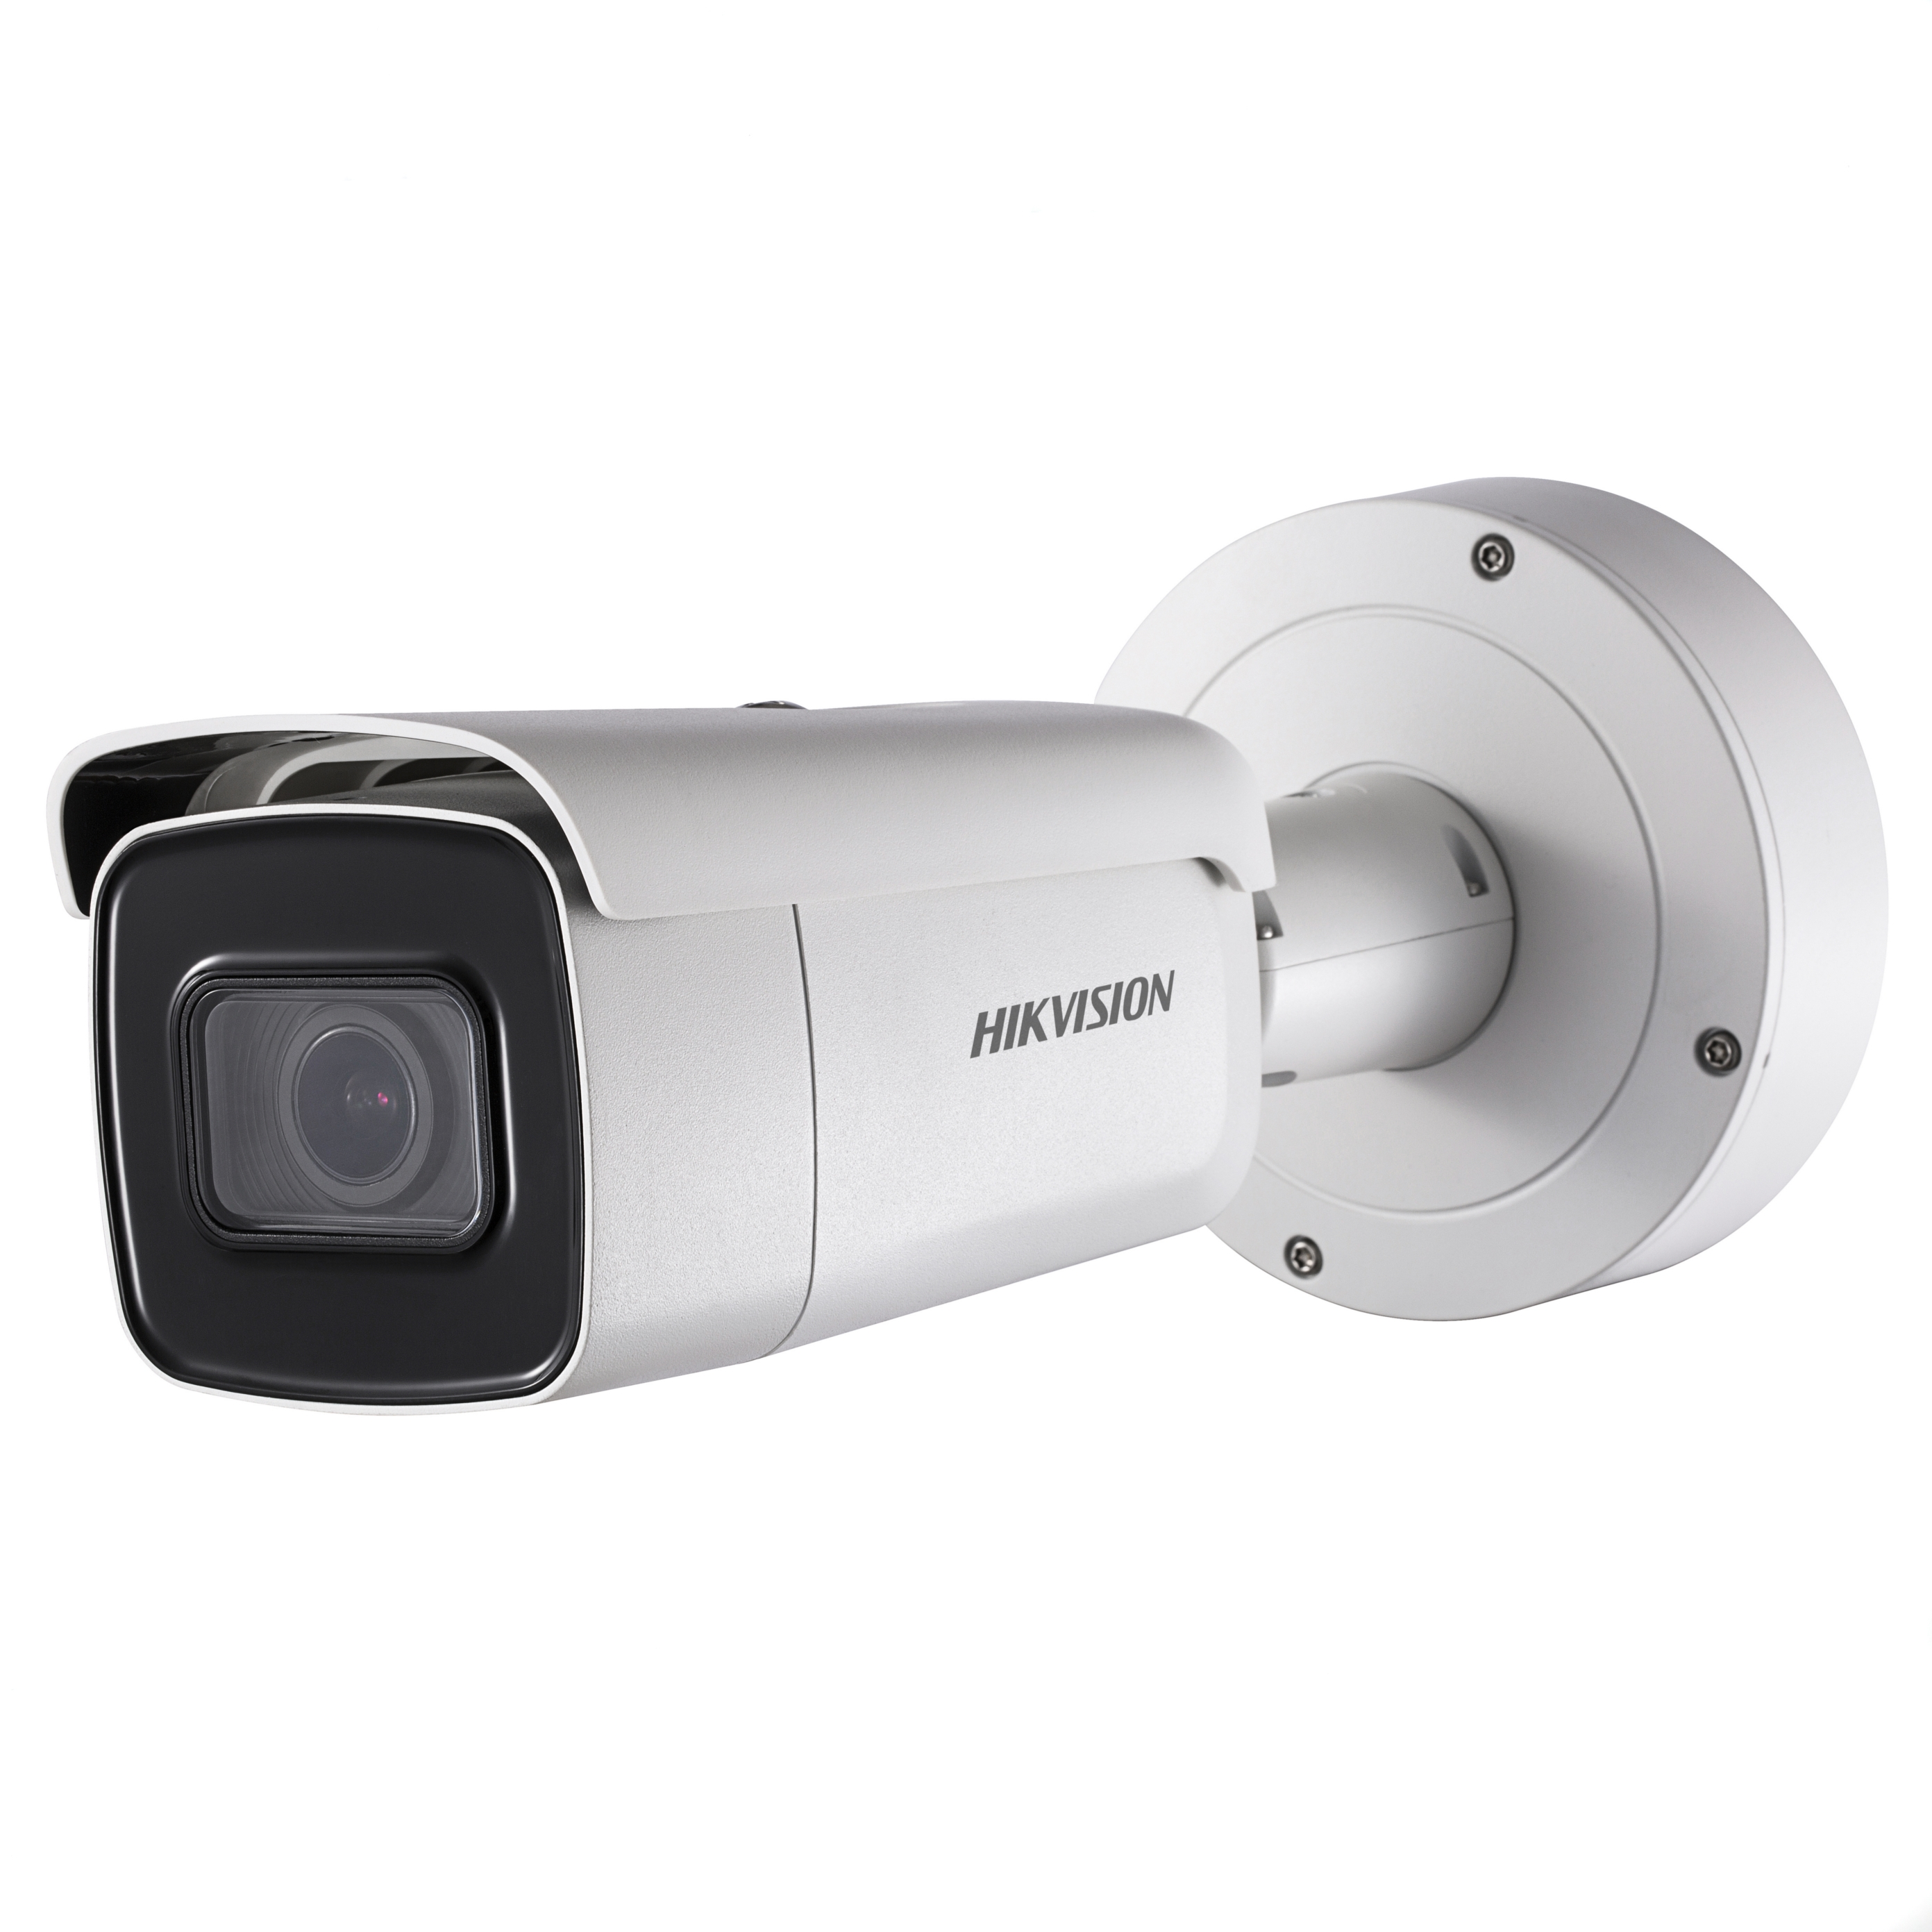 Hikvision DS-2CD2155FWD-IS 5MP Dome Network Camera ¦ use-IP Ltd